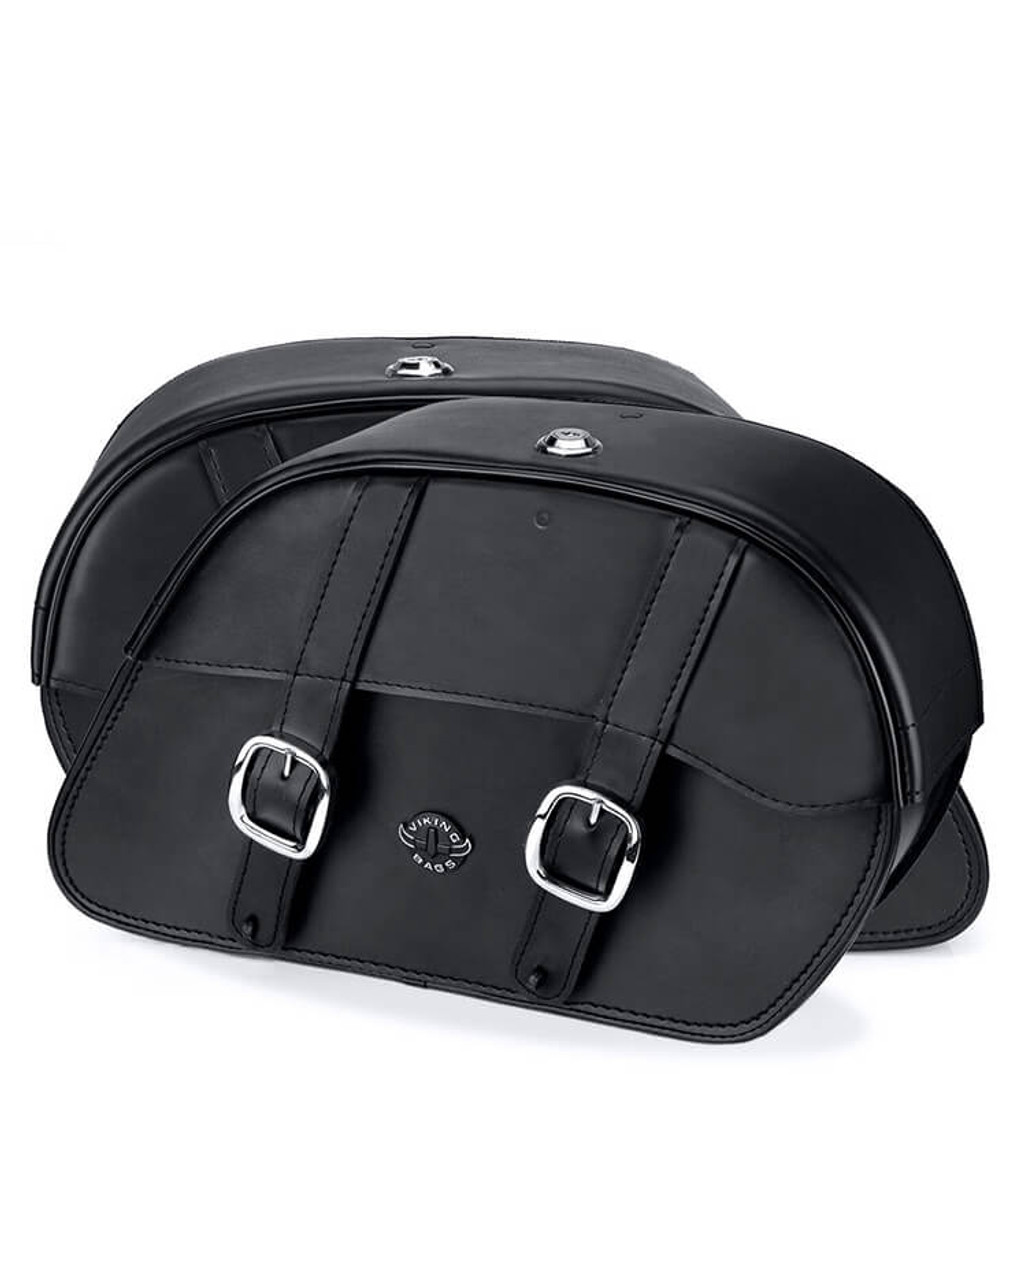 Viking Charger Slanted Medium Motorcycle Saddlebags For Harley Dyna Low Rider FXDL Both Bags View